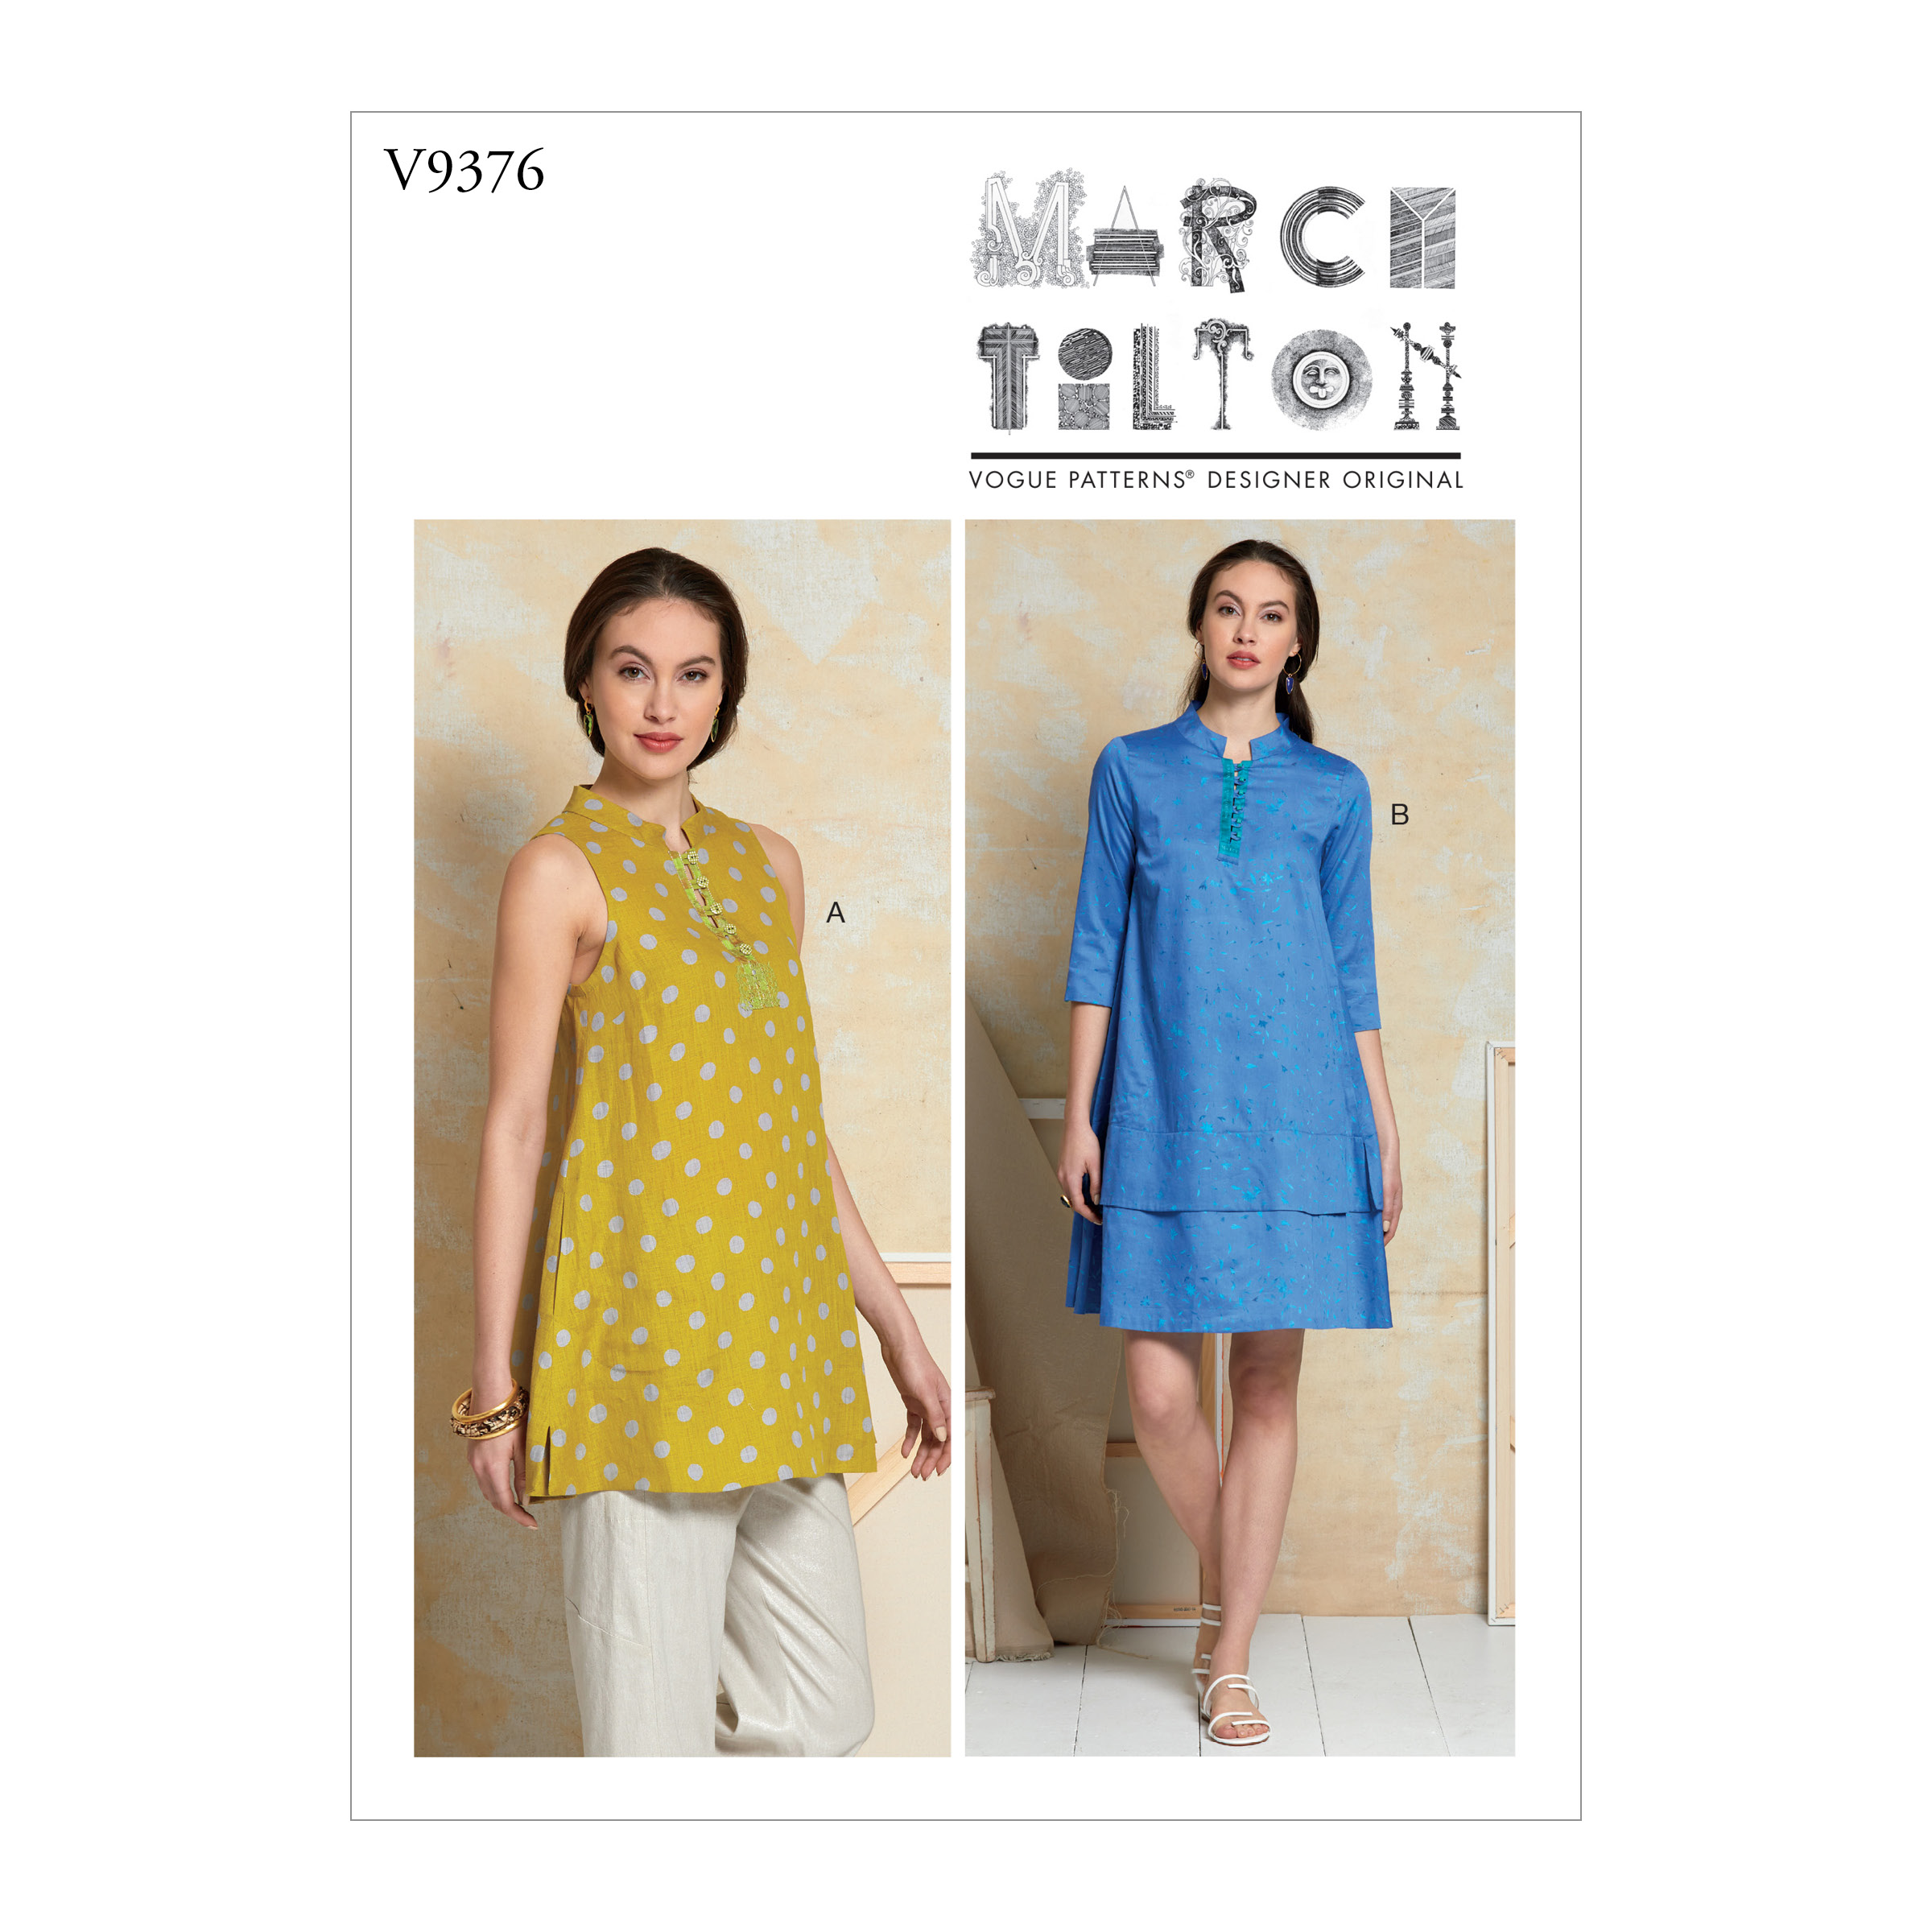 Vogue Patterns 12 MISSES' TUNIC AND DRESS